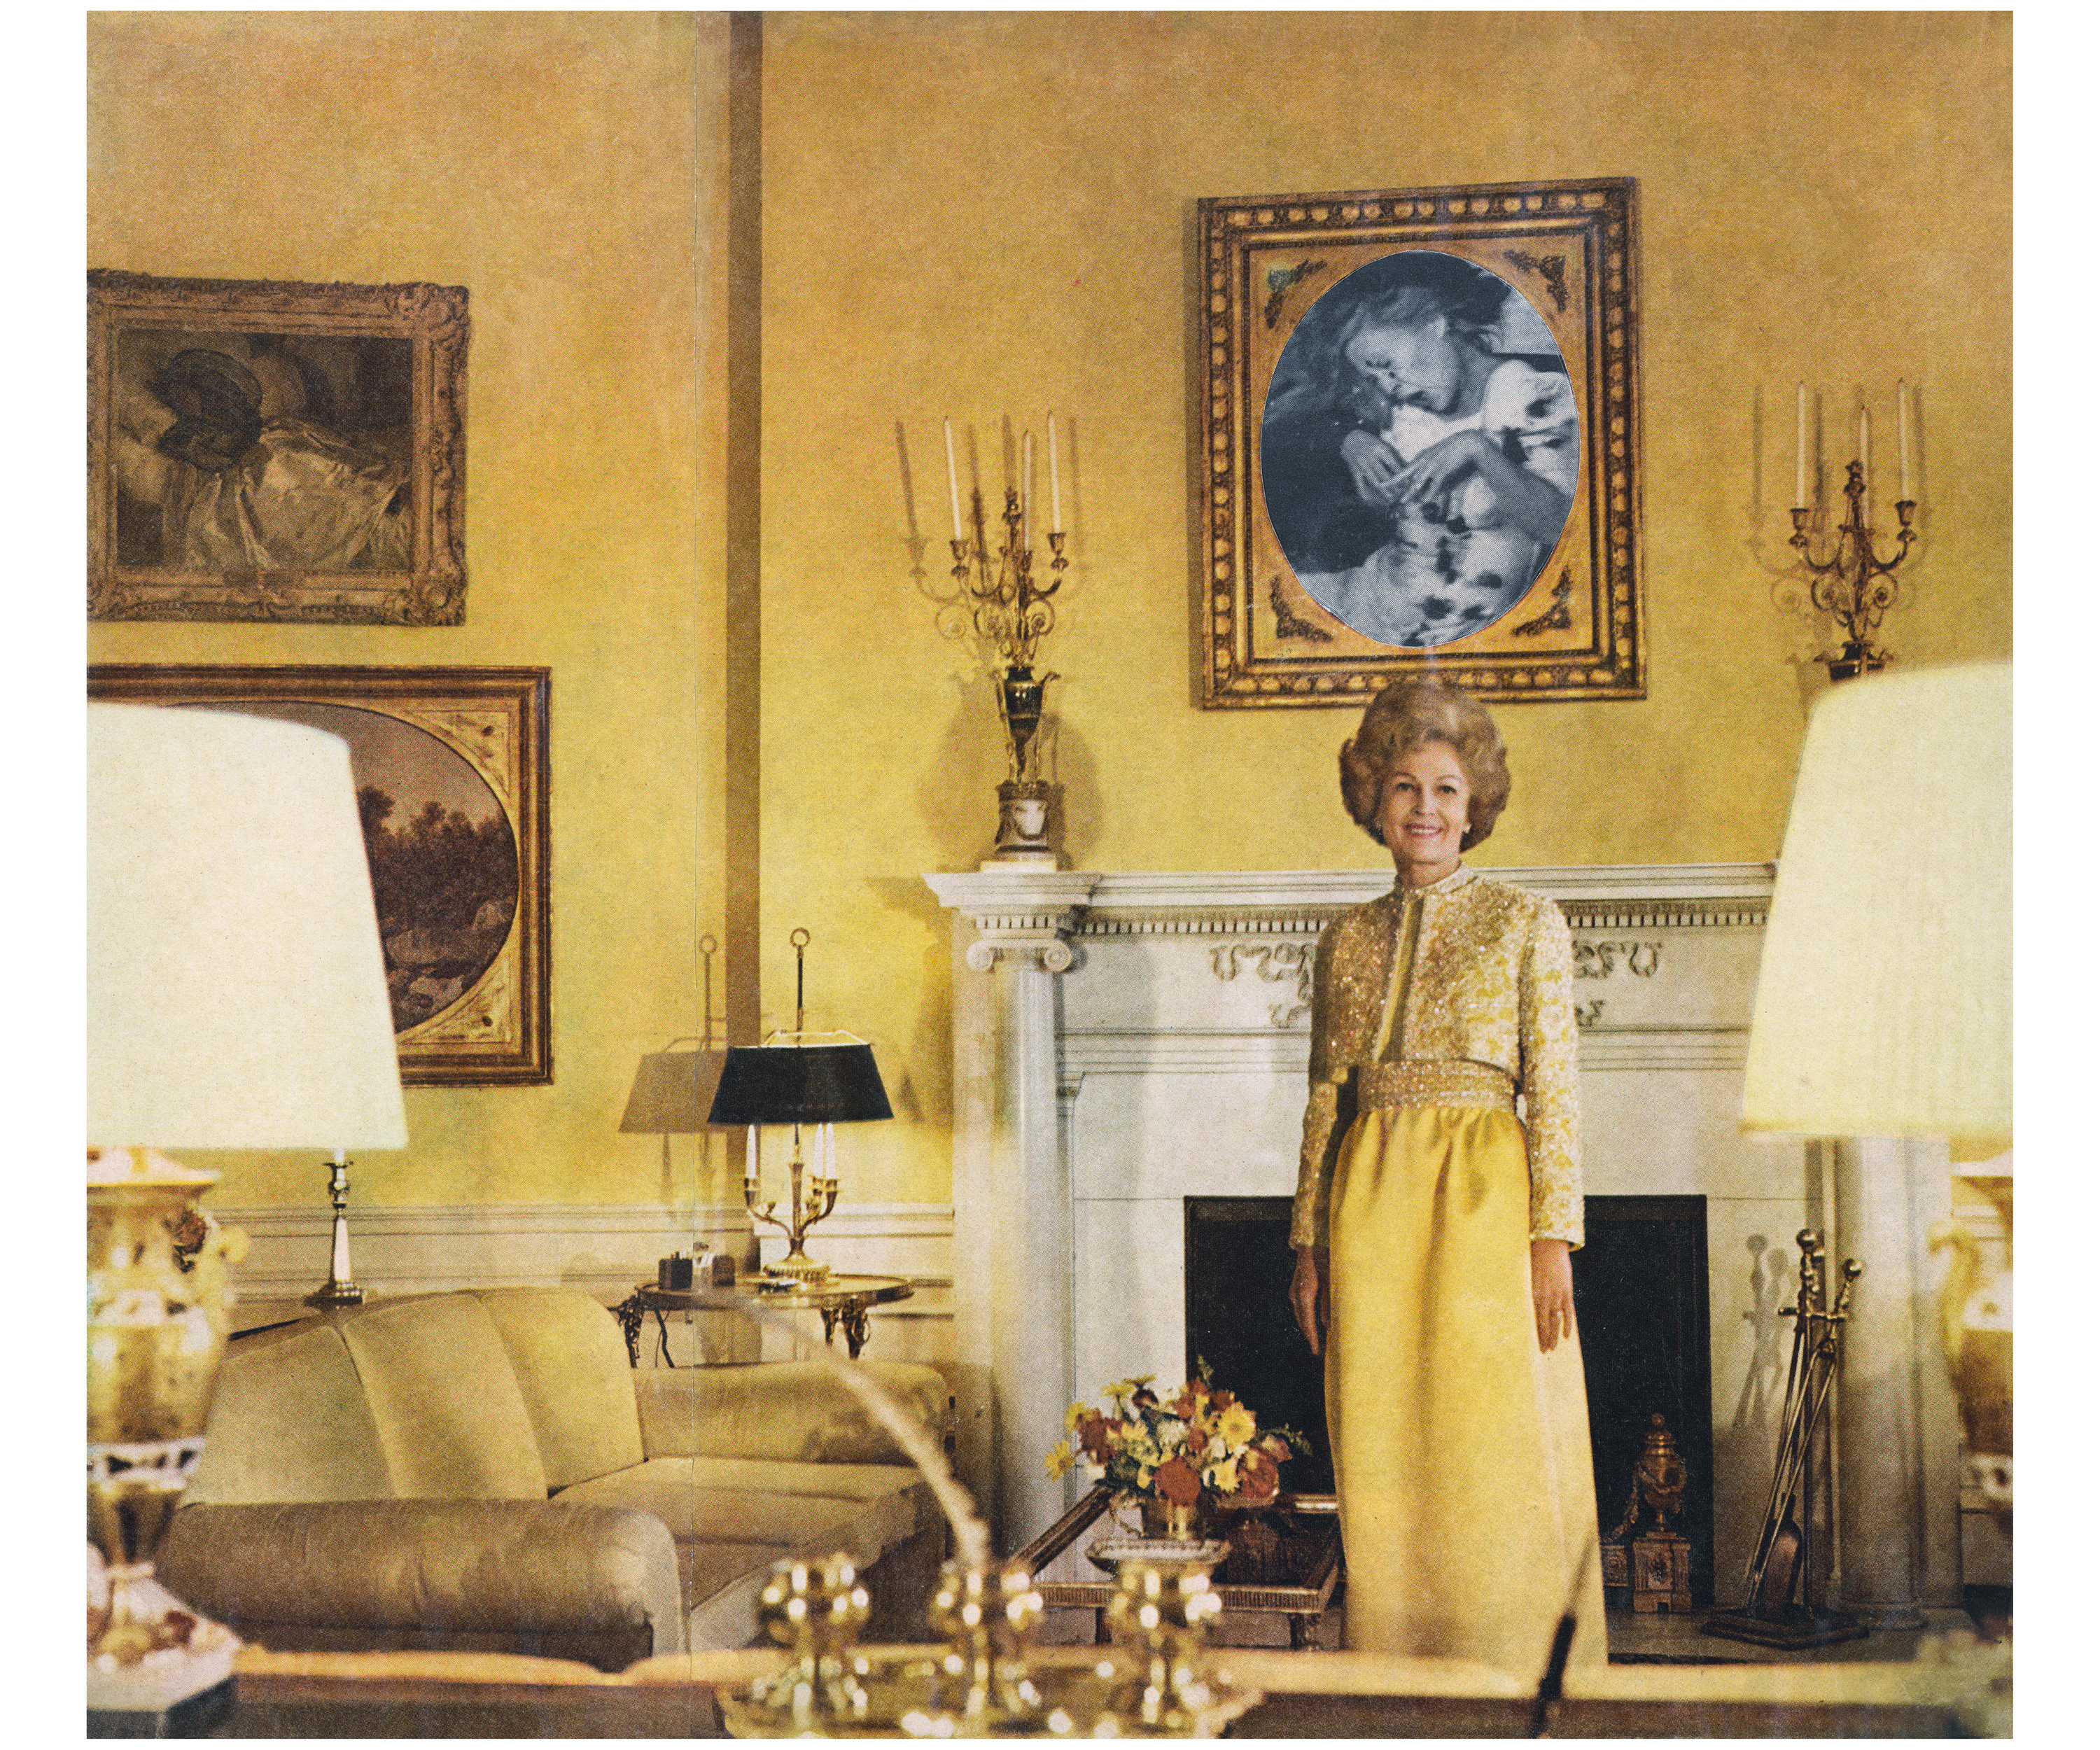 Survey Exhibition Devoted to American Artist Martha Rosler Showcases Five Decades of Her Work